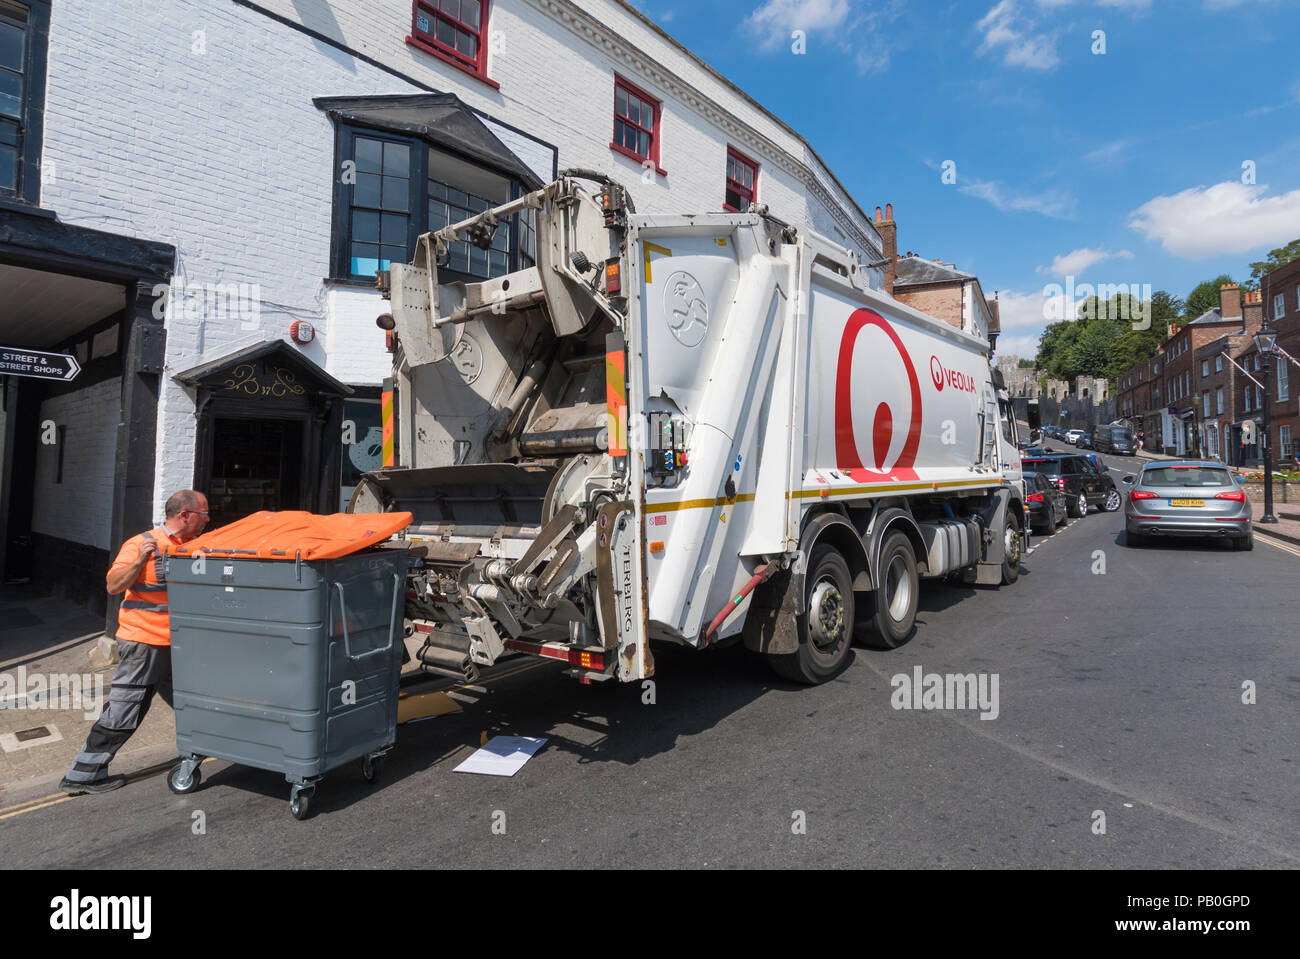 Veolia truck outside shops in a High Street collecting waste rubbish in Arundel, West Sussex, England, UK. - Stock Image